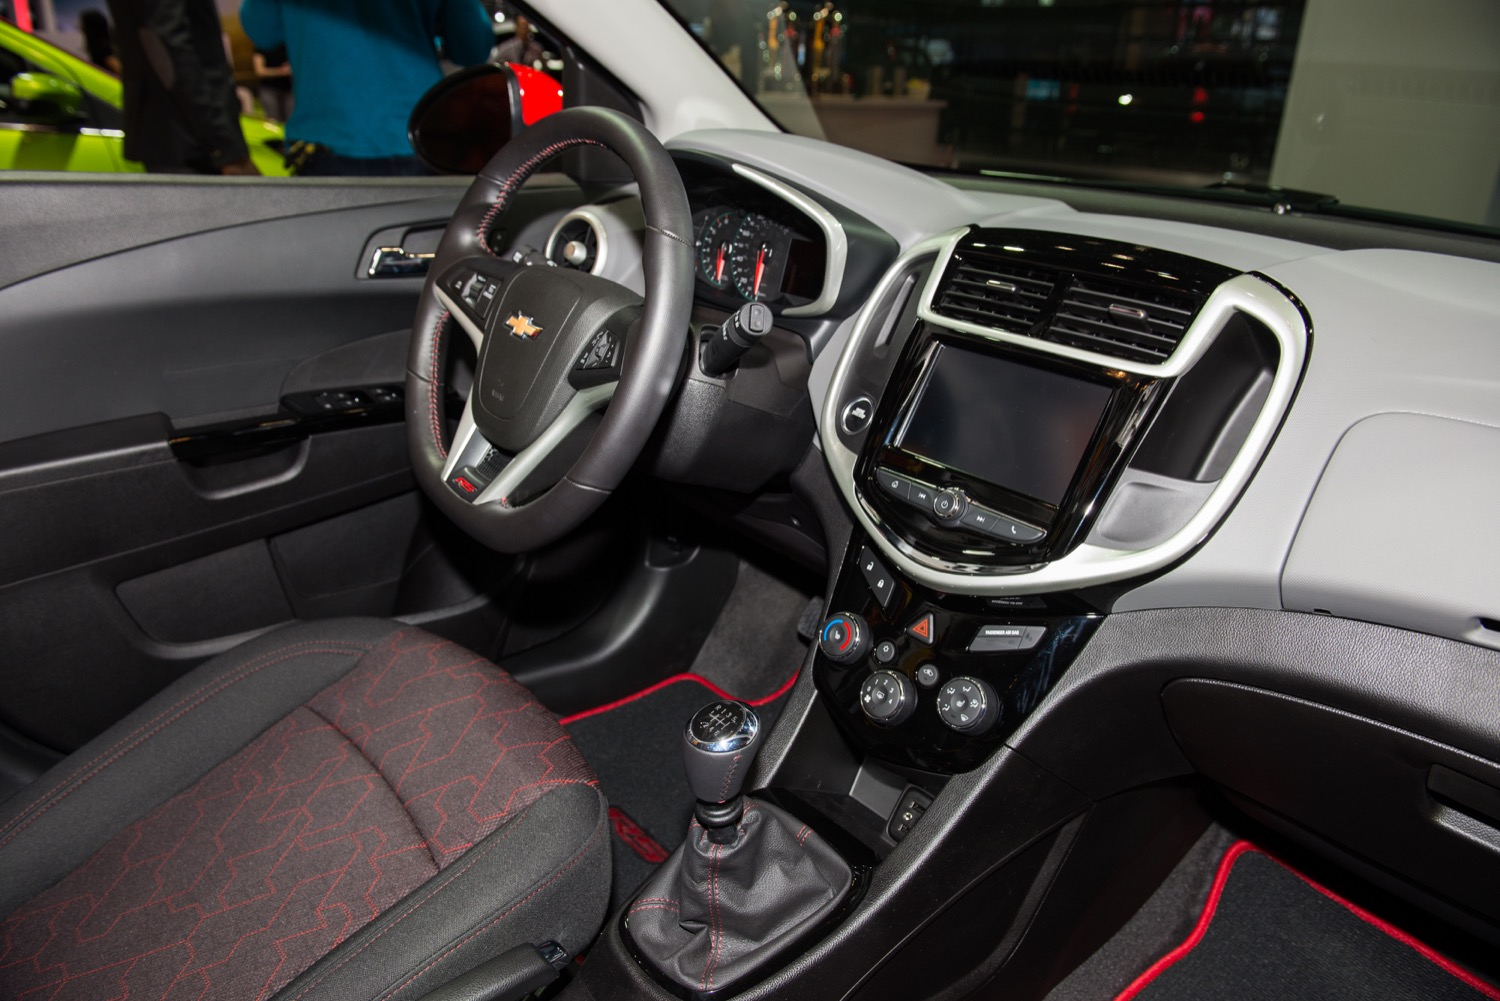 2017 Chevrolet Sonic Photos, Informations, Articles ...